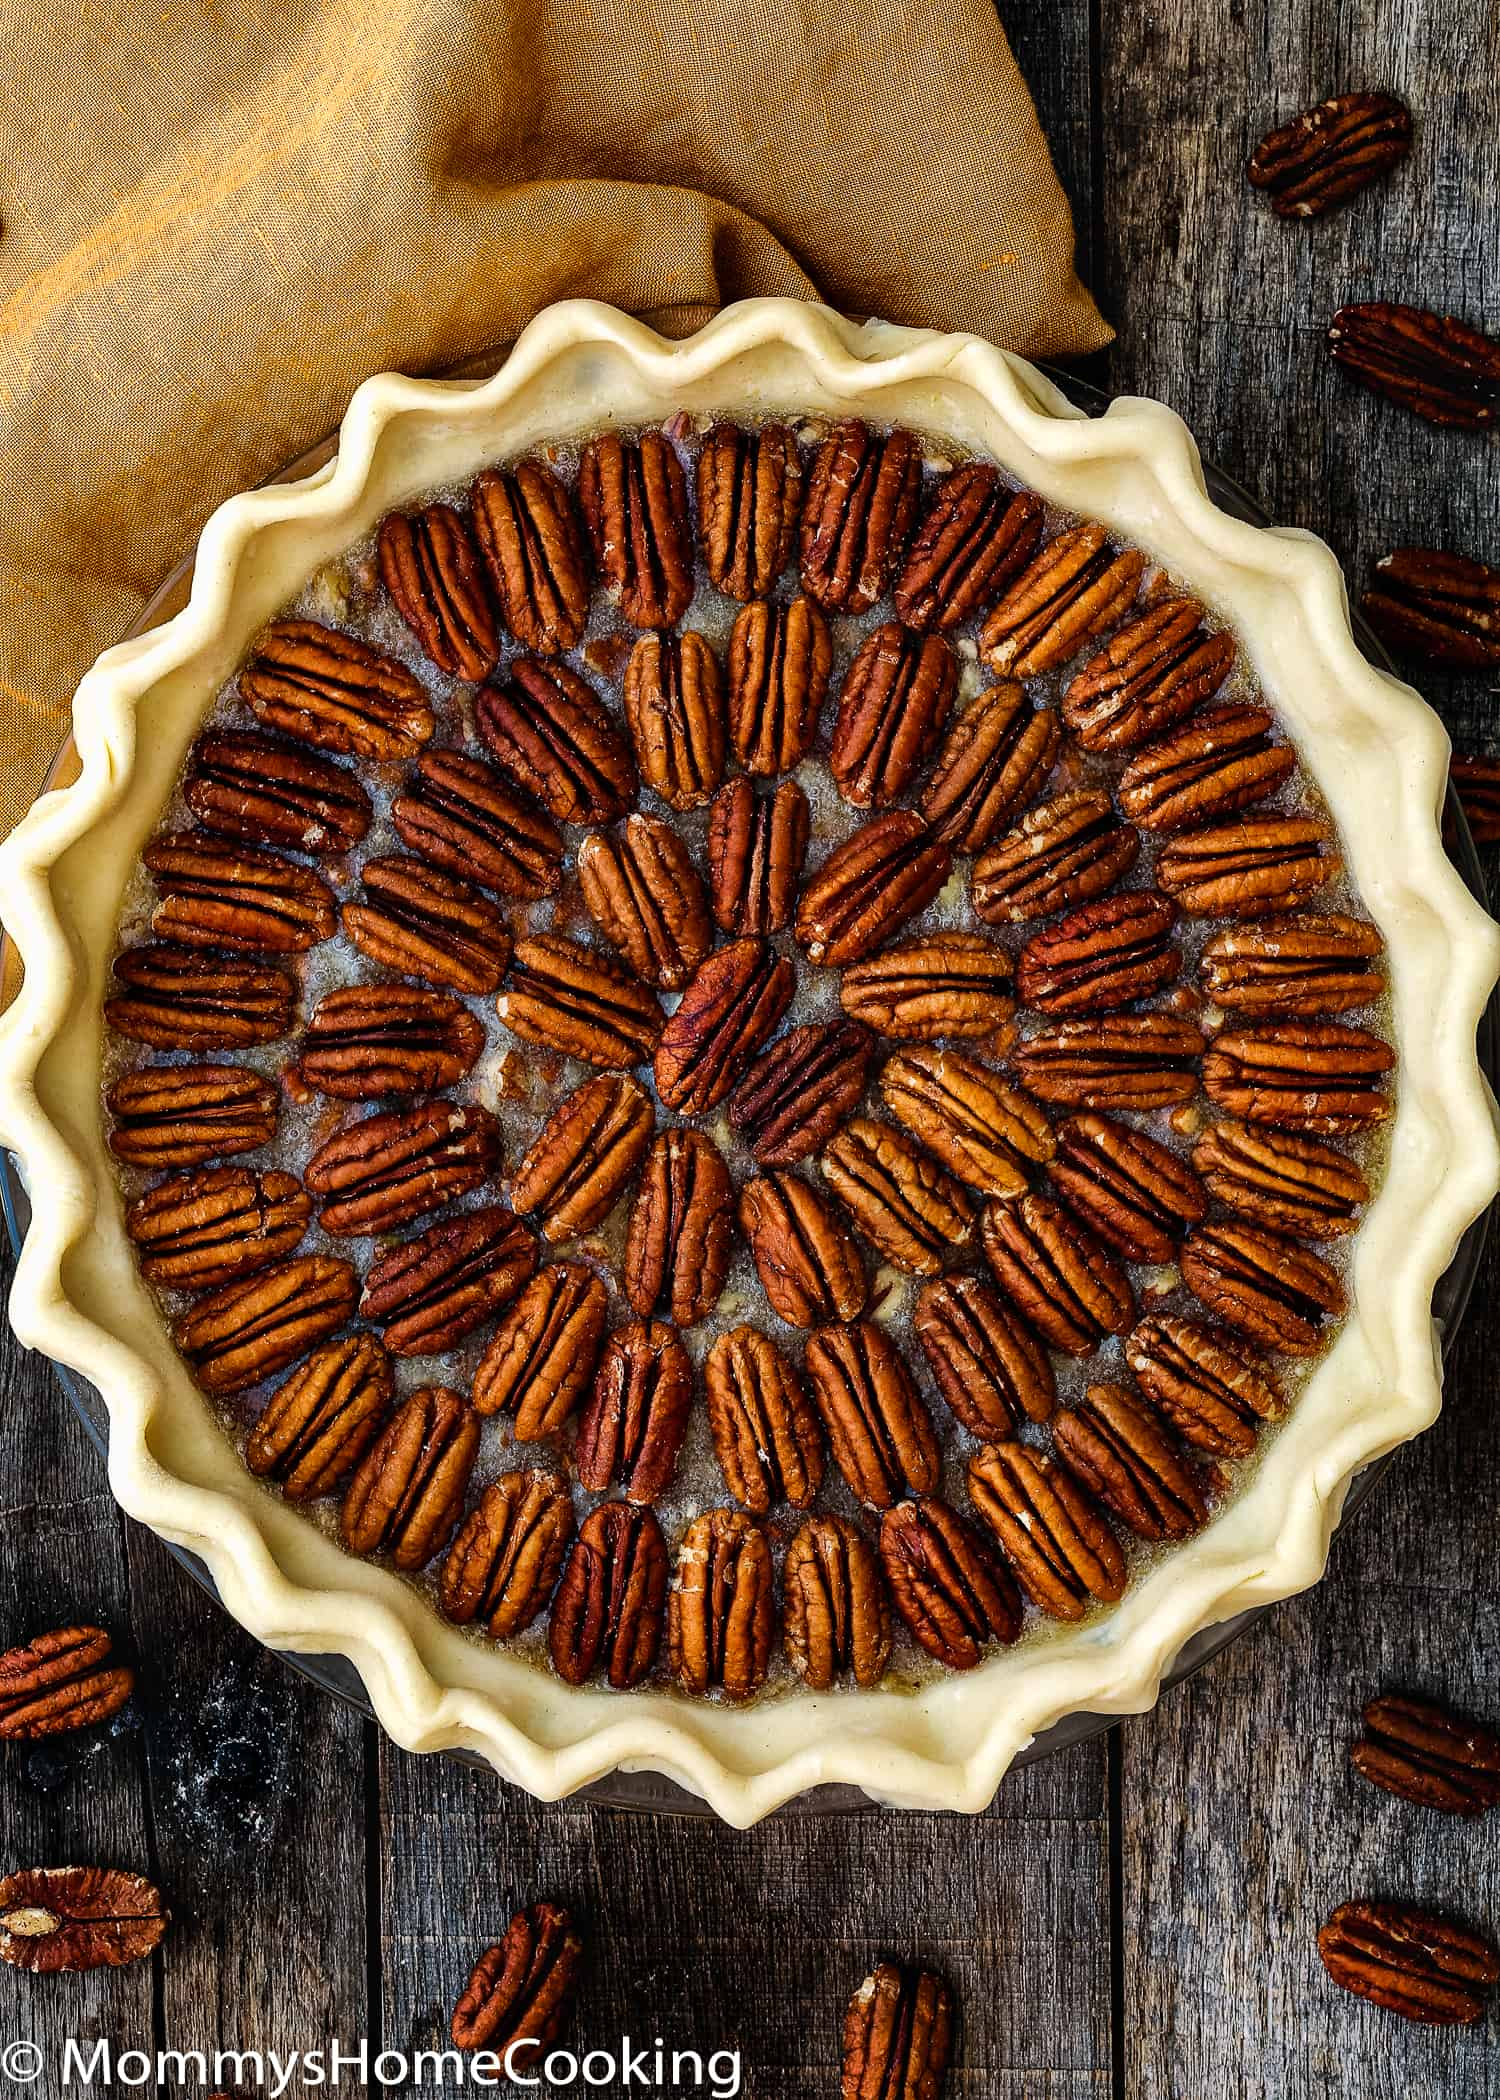 This uber-delicious Easy Eggless Pecan Pie is a MUST-MAKE for the holidays! With its crispy top, the gooey center and the flaky crust, this Thanksgiving classic dessert will wow you and your guests. Easy to make, easier to eat. https;//mommyshomecooking.com